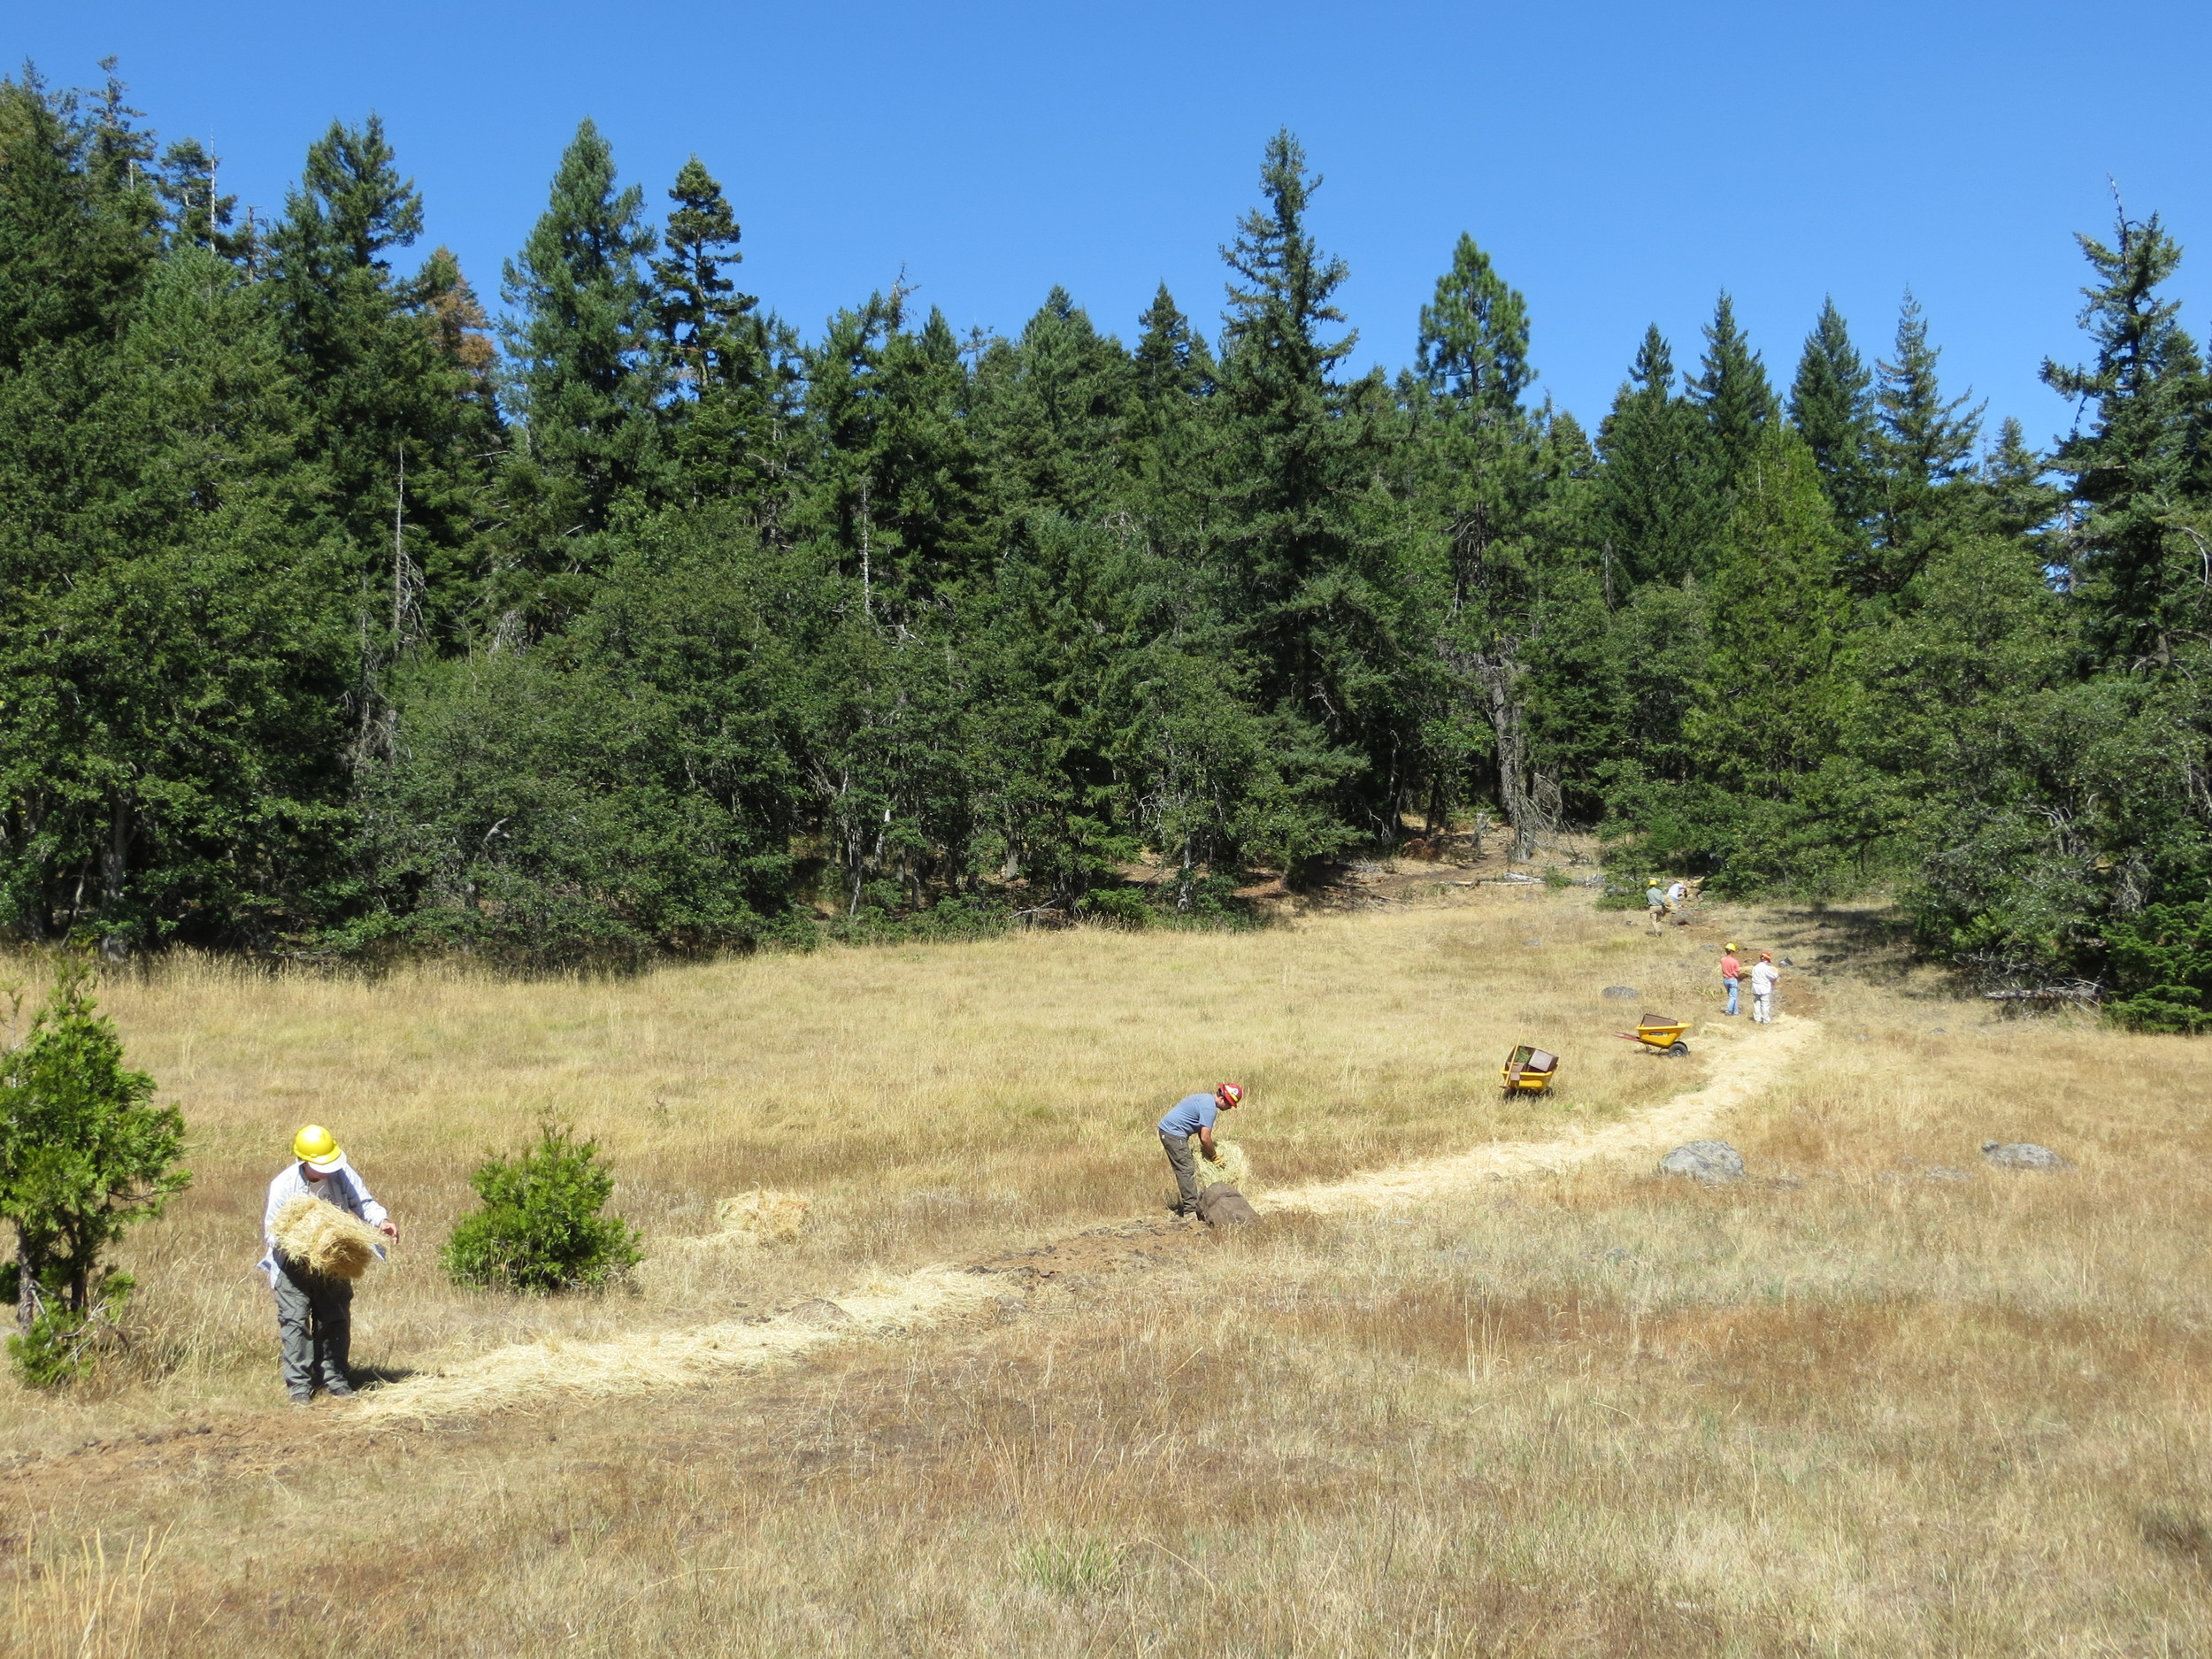 Meadow restoration - 2013 National Public Lands Day. Joel Brumm photos